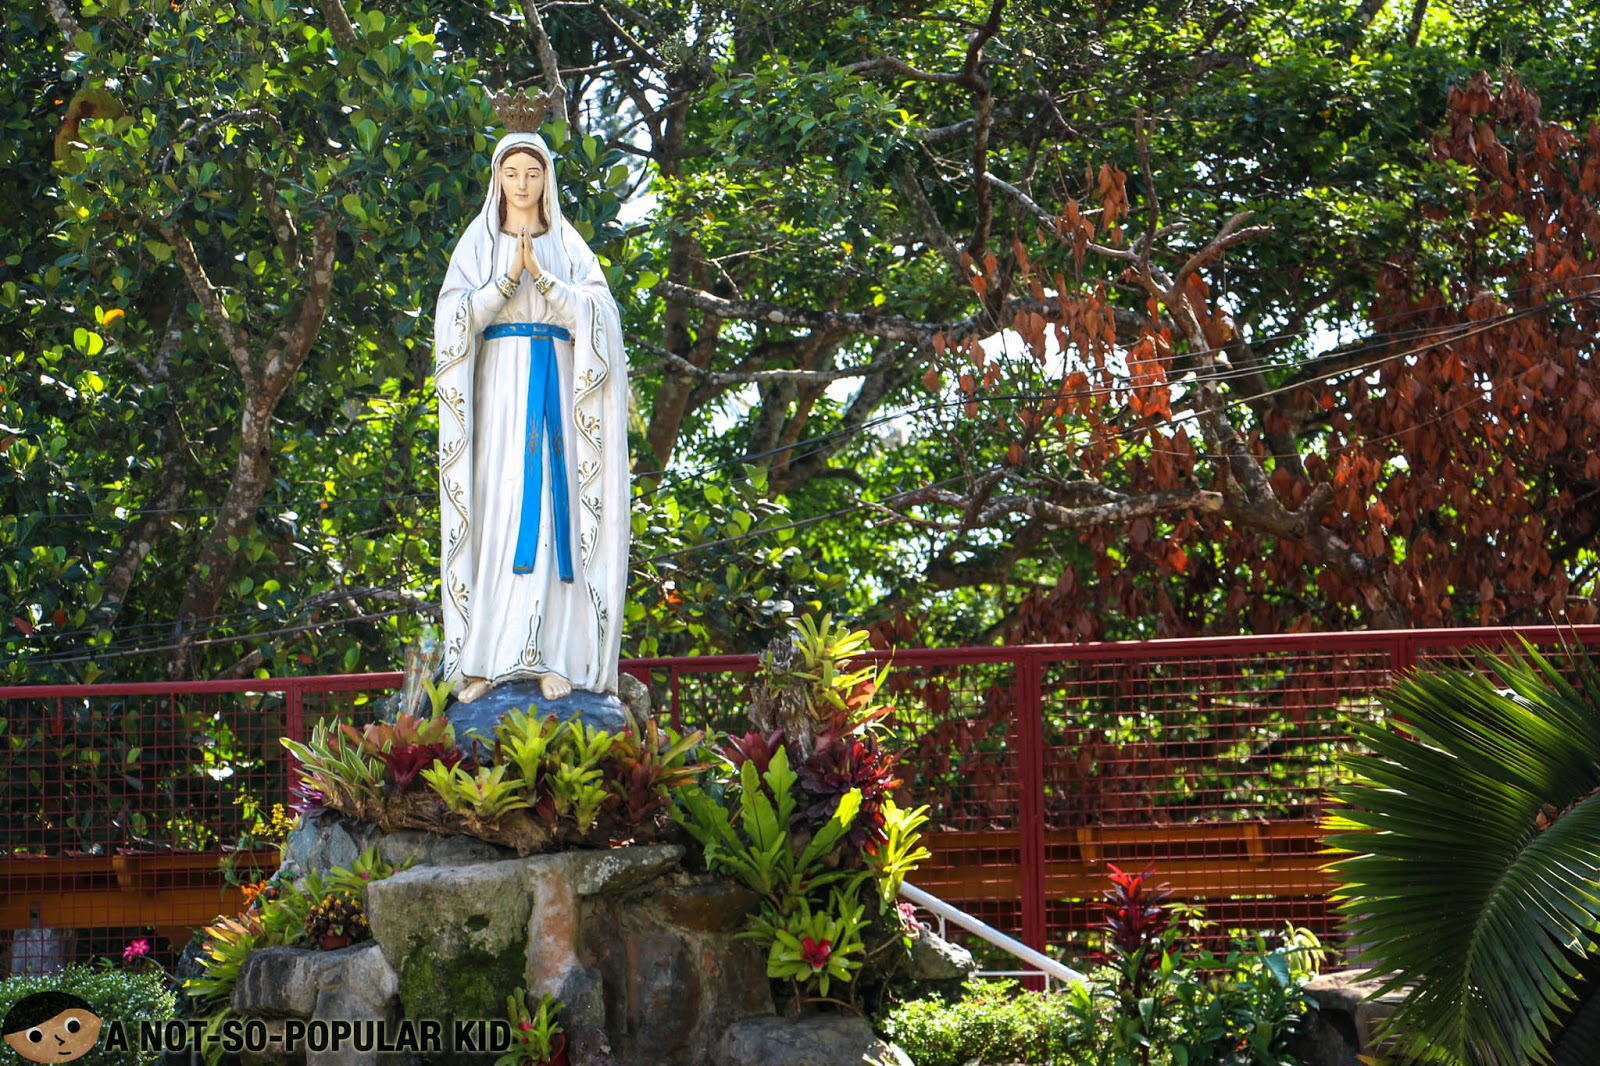 Statue of Mama Mary in Our Lady of Lourdes Church